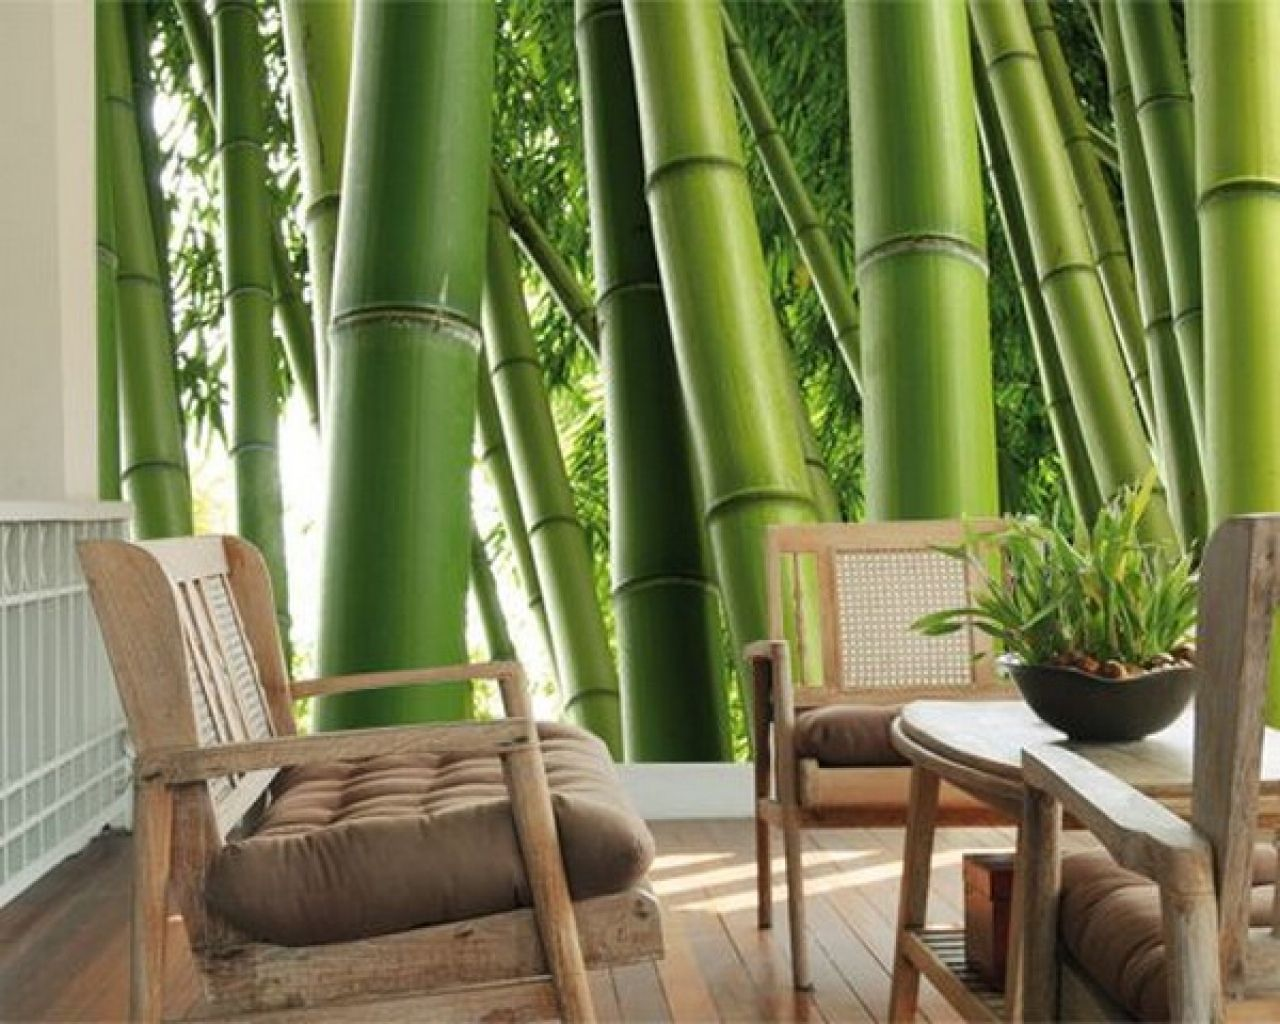 Home interiorsmall living room decor with stunning green bamboo home interiorsmall living room decor with stunning green bamboo wallpaper wall and small rustic amipublicfo Choice Image